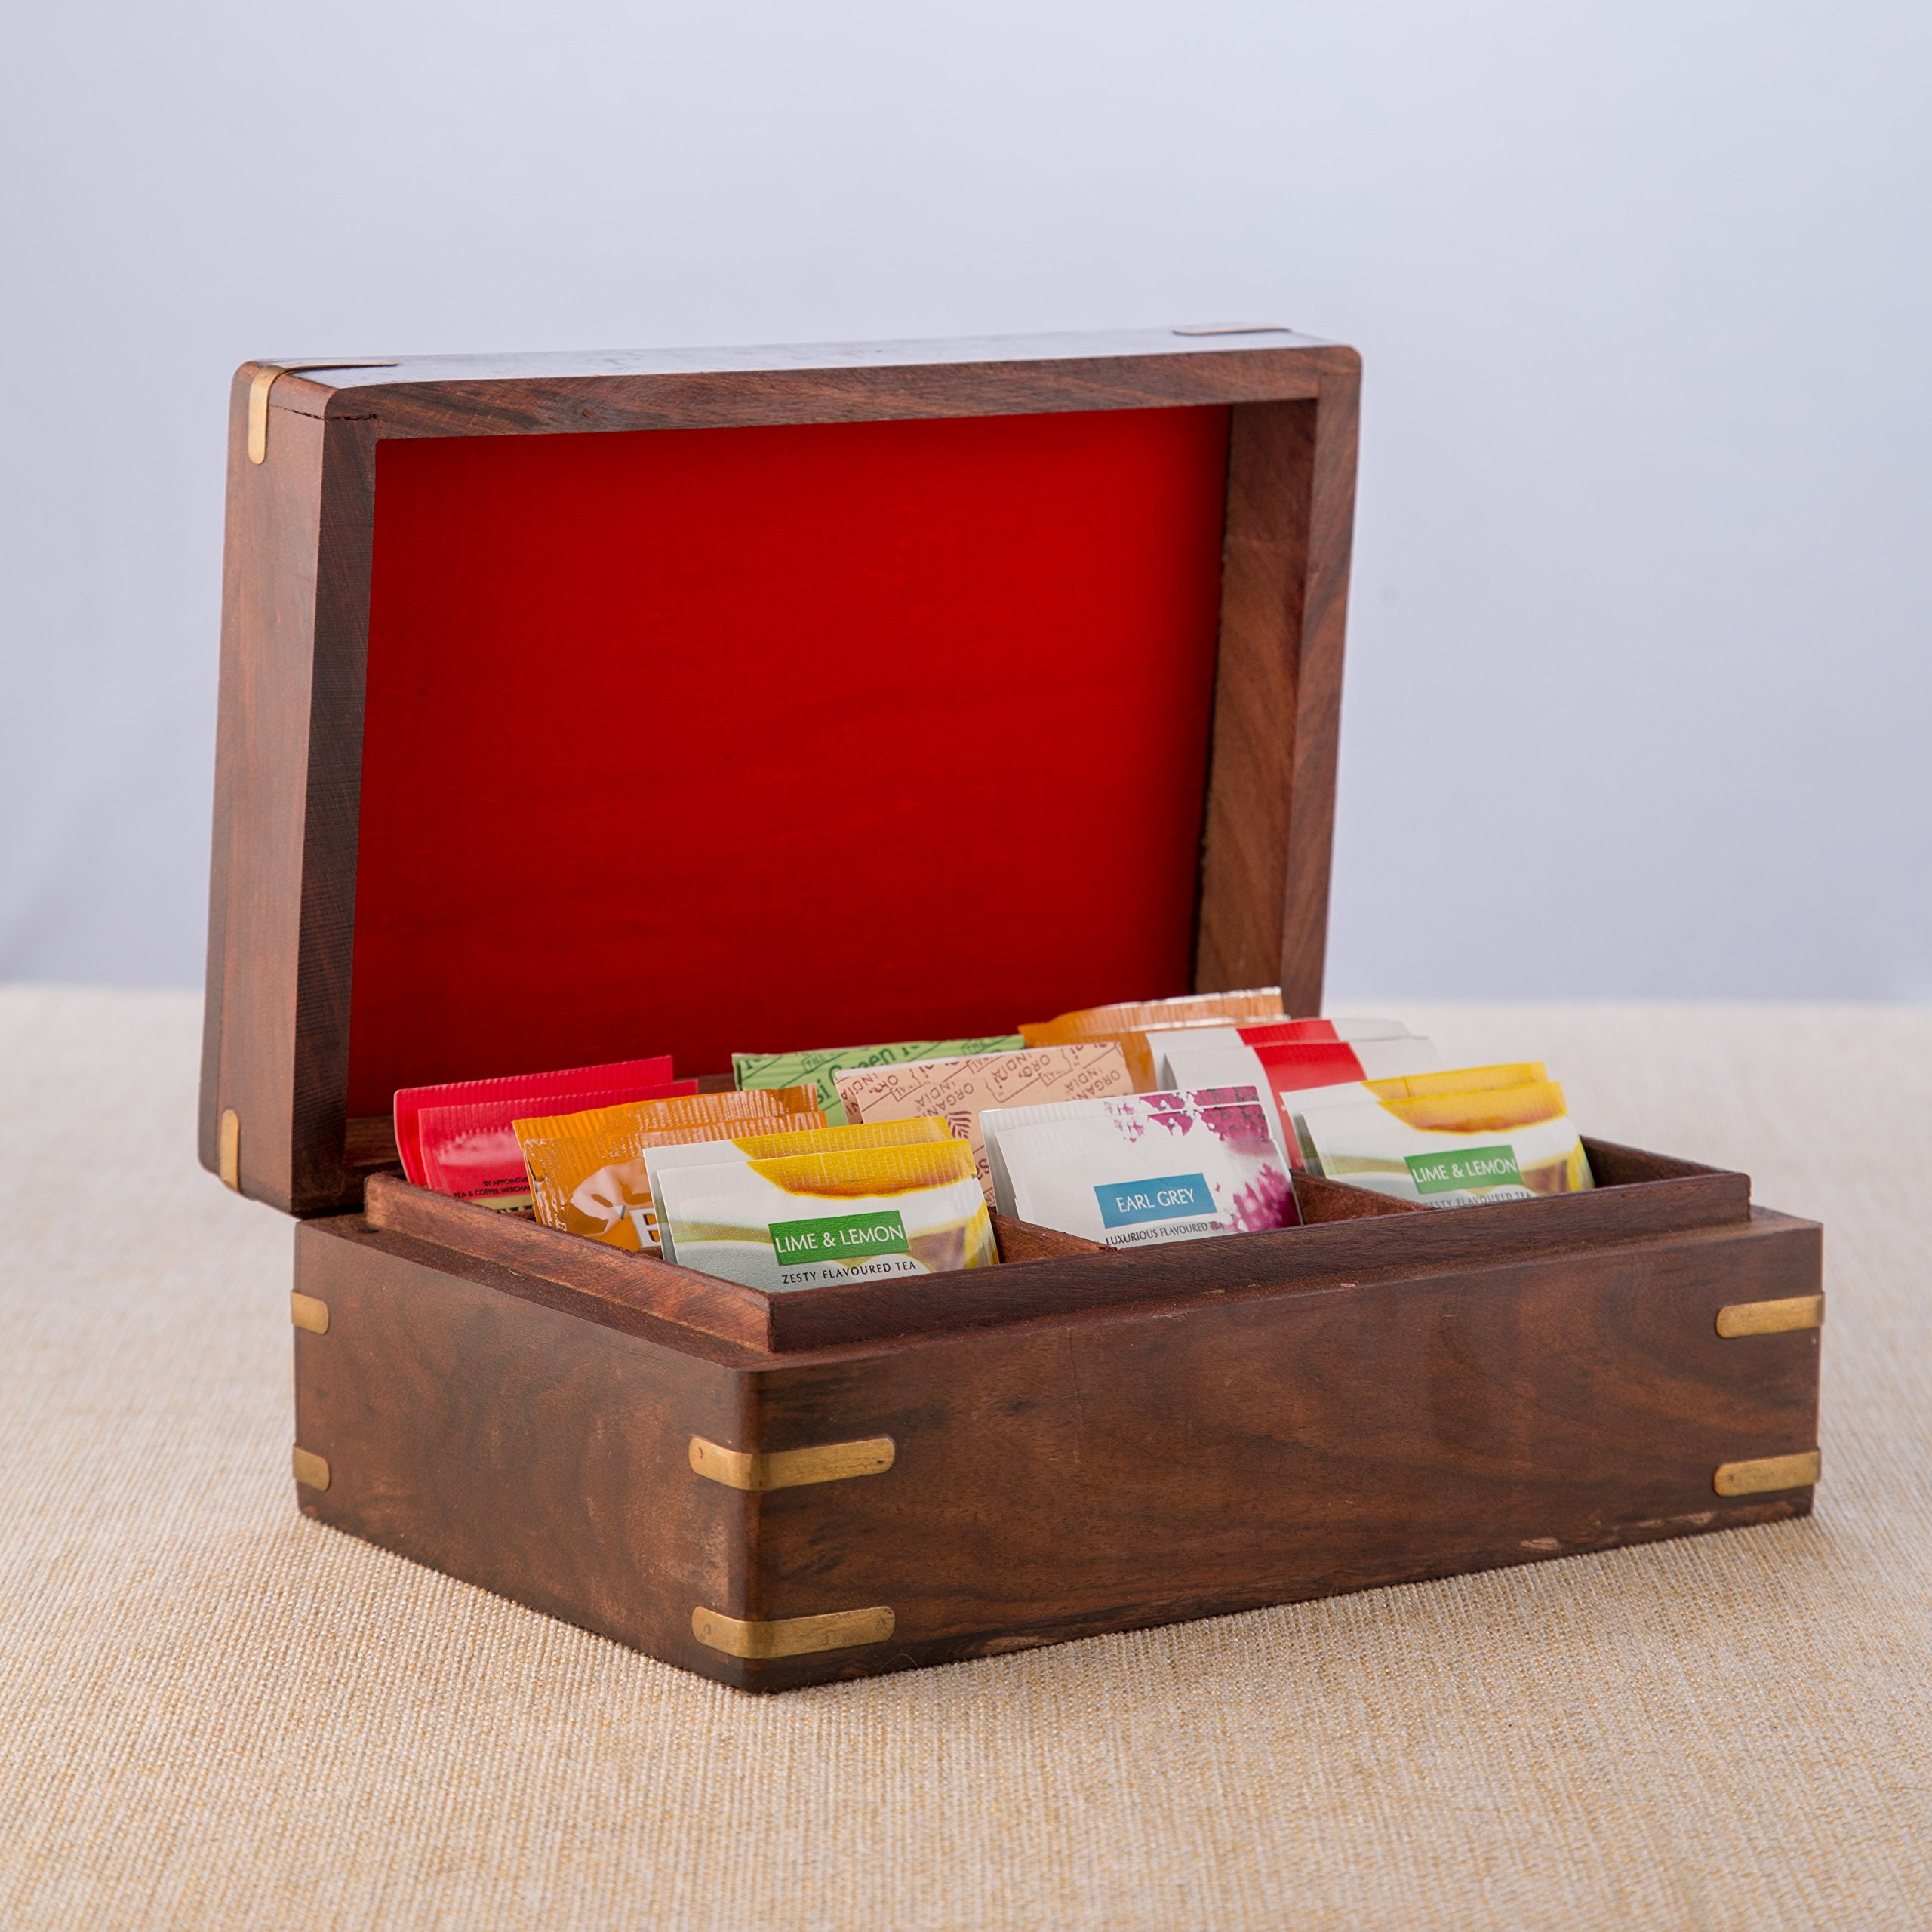 Rusticity Indian Rosewood Antique Treasure Storage Chest Box for Condiment Spice&Jewellery/Vintage Rustic Keepsake Trinket Organizer w/9 Compartments/Handmade Decorative Sheesham Wood Caddy Tea Bag by Rusticity (Image #1)